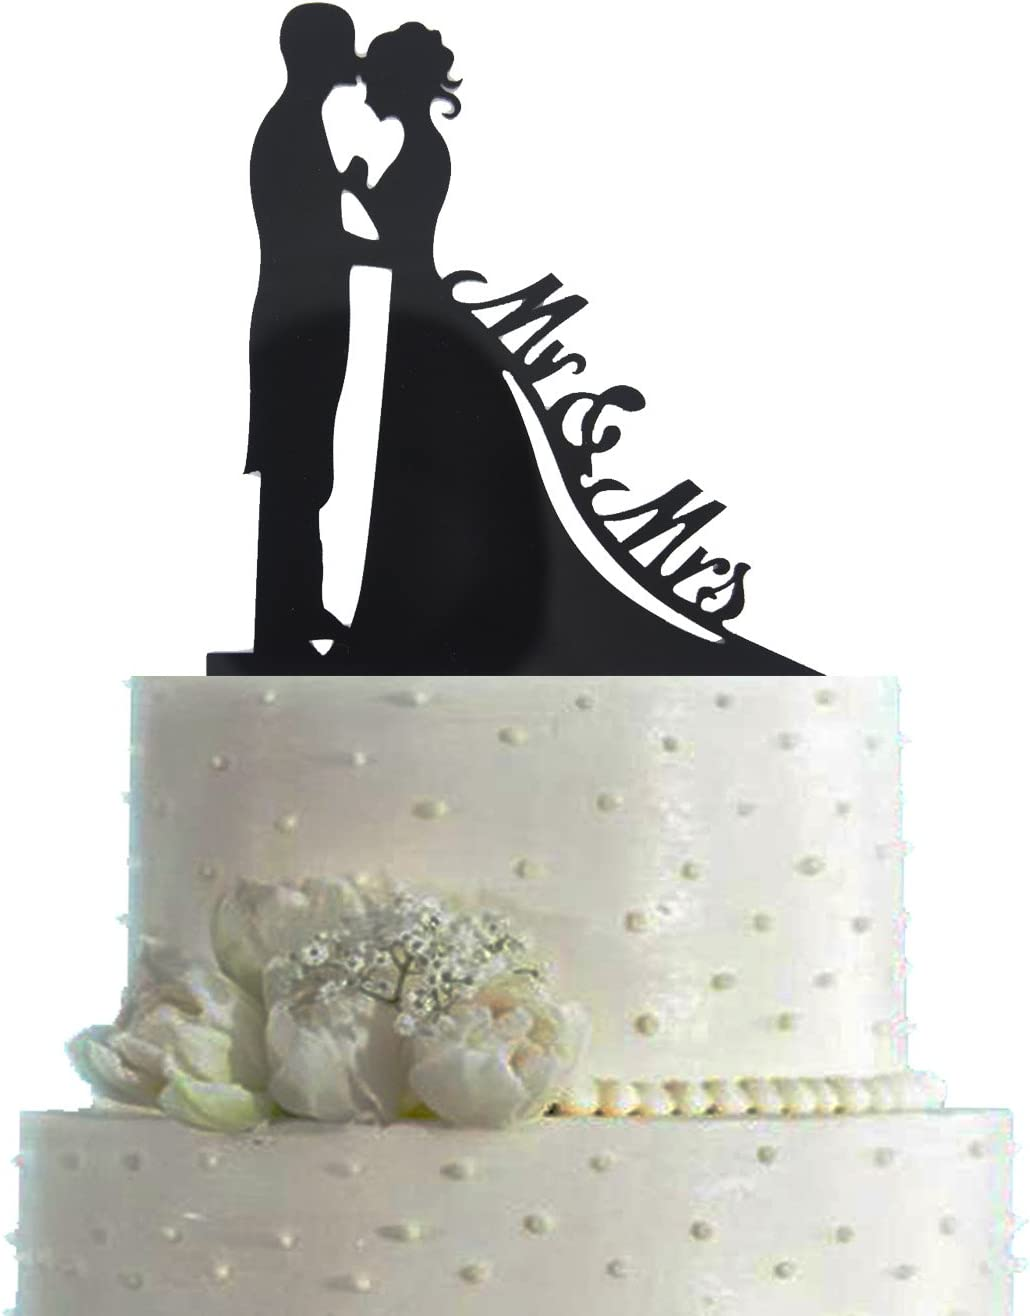 ArRord Mr /& Mrs Cake Topper with Bride and Groom Sweet Love Acrylic Silhouette Wedding Cake Topper